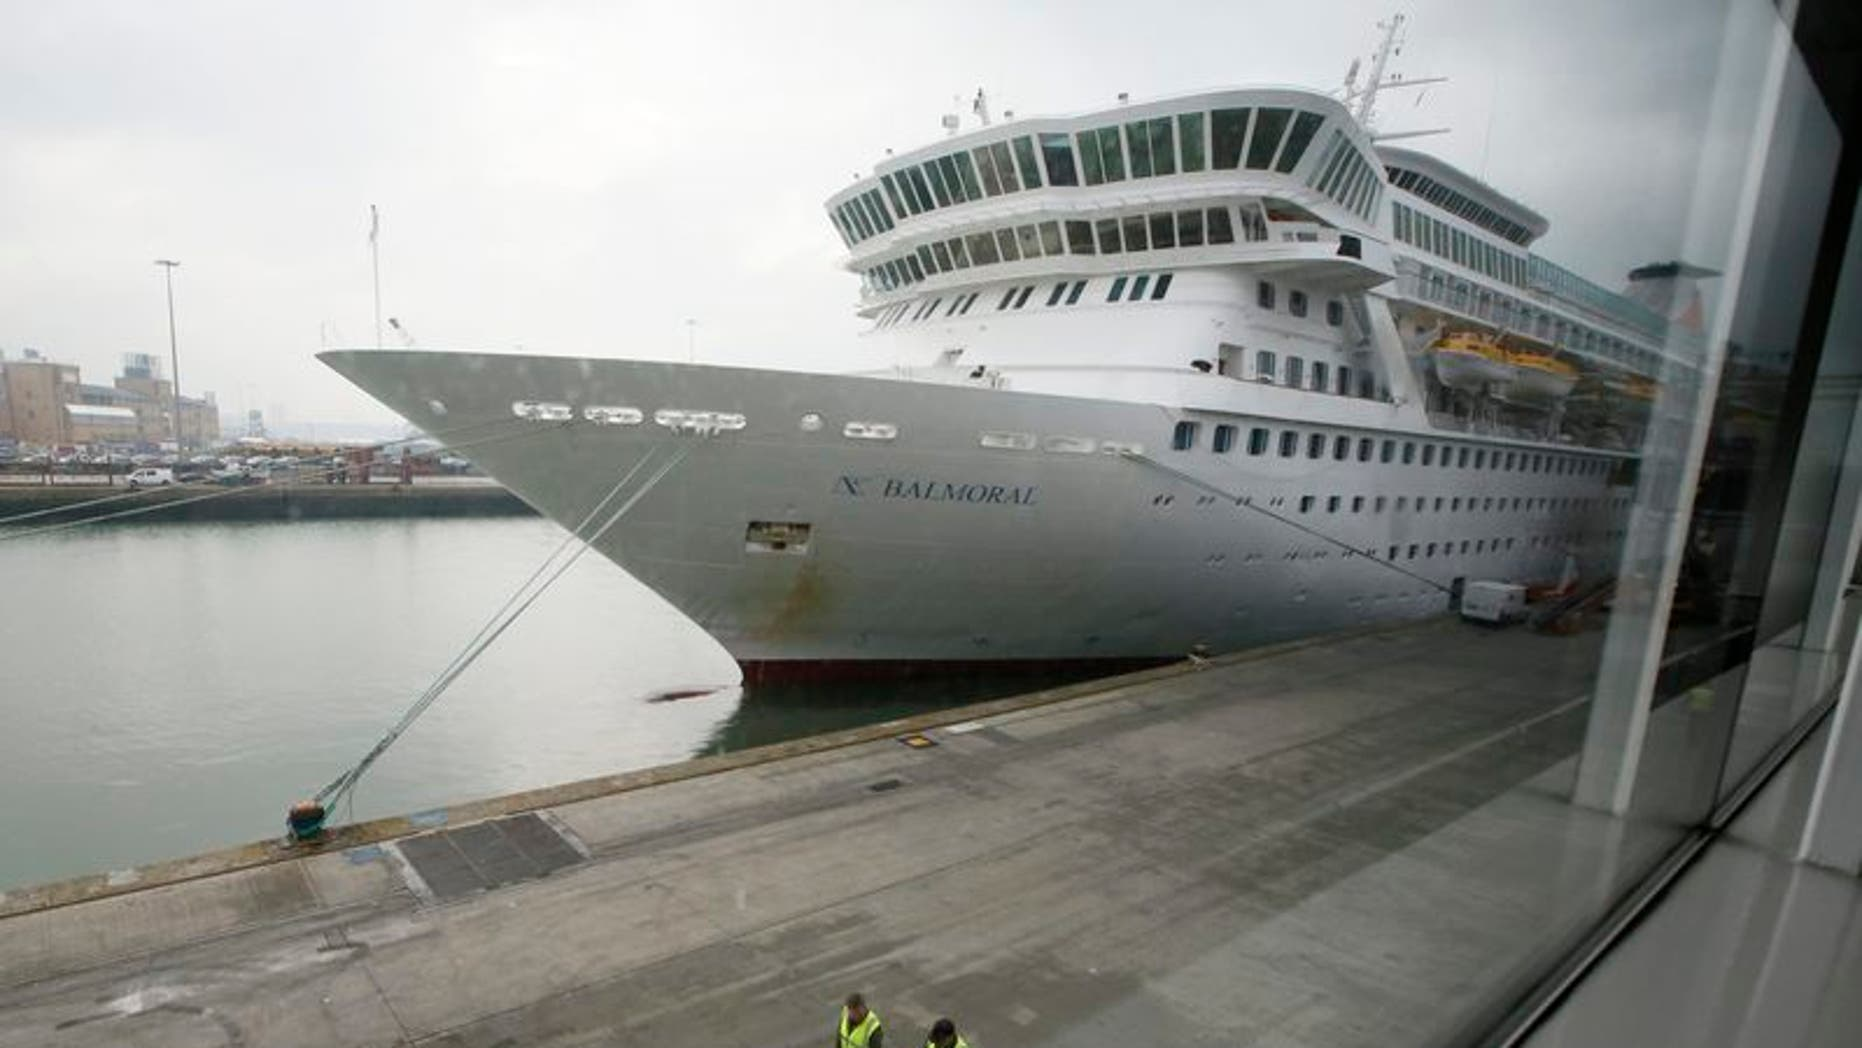 File photo of the cruise ship Balmoral prior to boarding of passengers going on the Titanic Memorial Cruise in Southampton